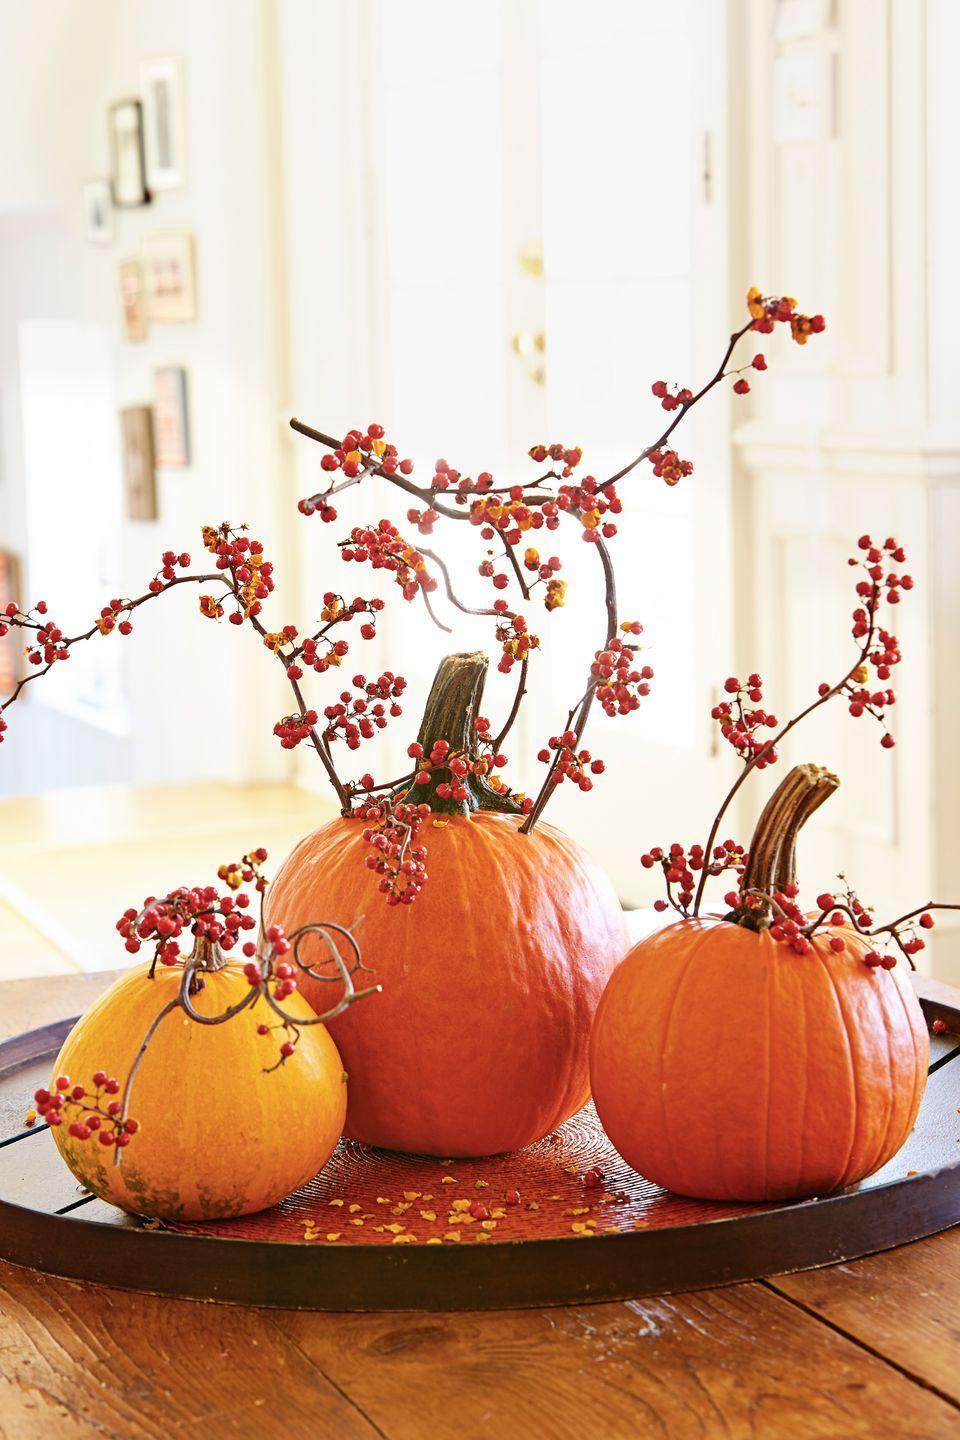 "<p>If you don't want to deal with the mess of carving, drill small holes in the rind instead. Then insert sprigs of colorful berries or <a href=""https://www.goodhousekeeping.com/holidays/halloween-ideas/g1714/no-carve-pumpkin-decorating/?slide=2"" rel=""nofollow noopener"" target=""_blank"" data-ylk=""slk:fresh flower stems"" class=""link rapid-noclick-resp"">fresh flower stems</a> for a dramatic effect. </p>"